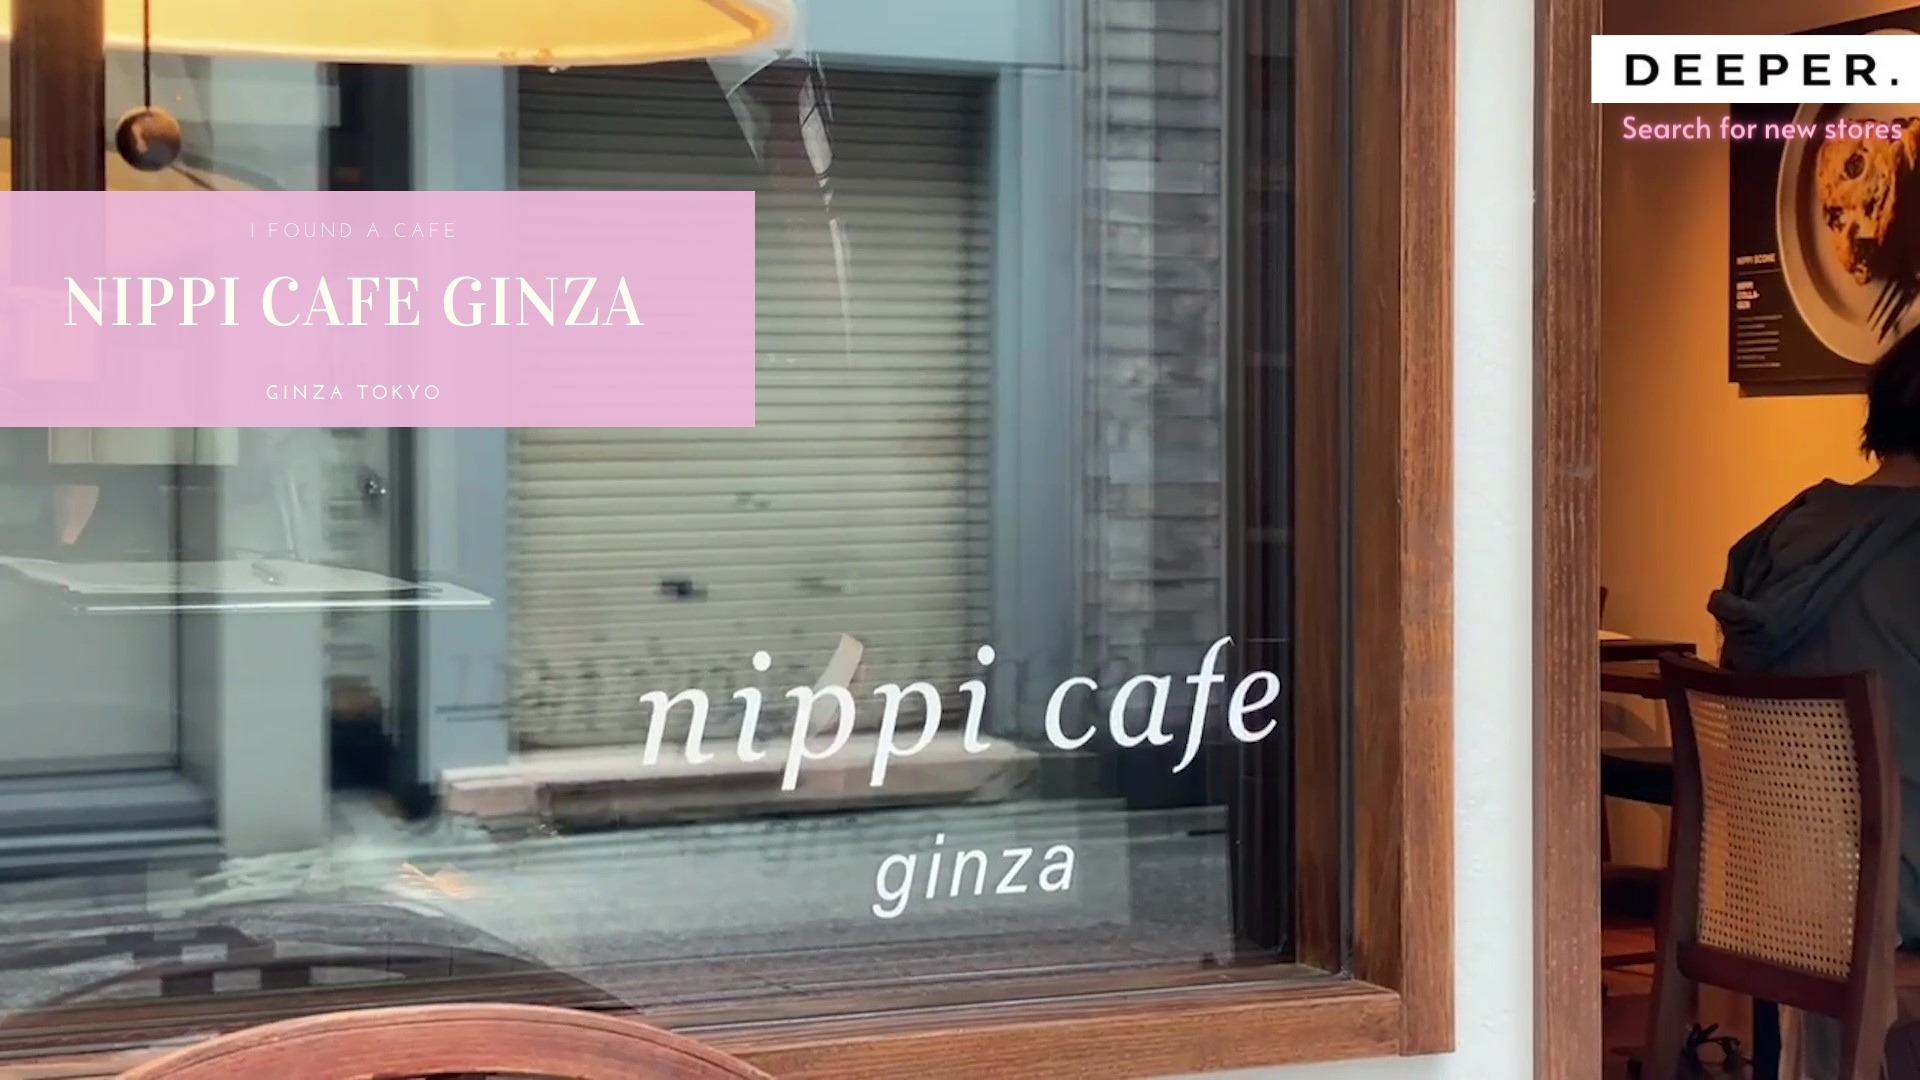 nippi cafe ginza(ニッピ カフェ 銀座)New Open!New Door♡Deeper.東京・銀座VLOG Ruby Reps vol.1